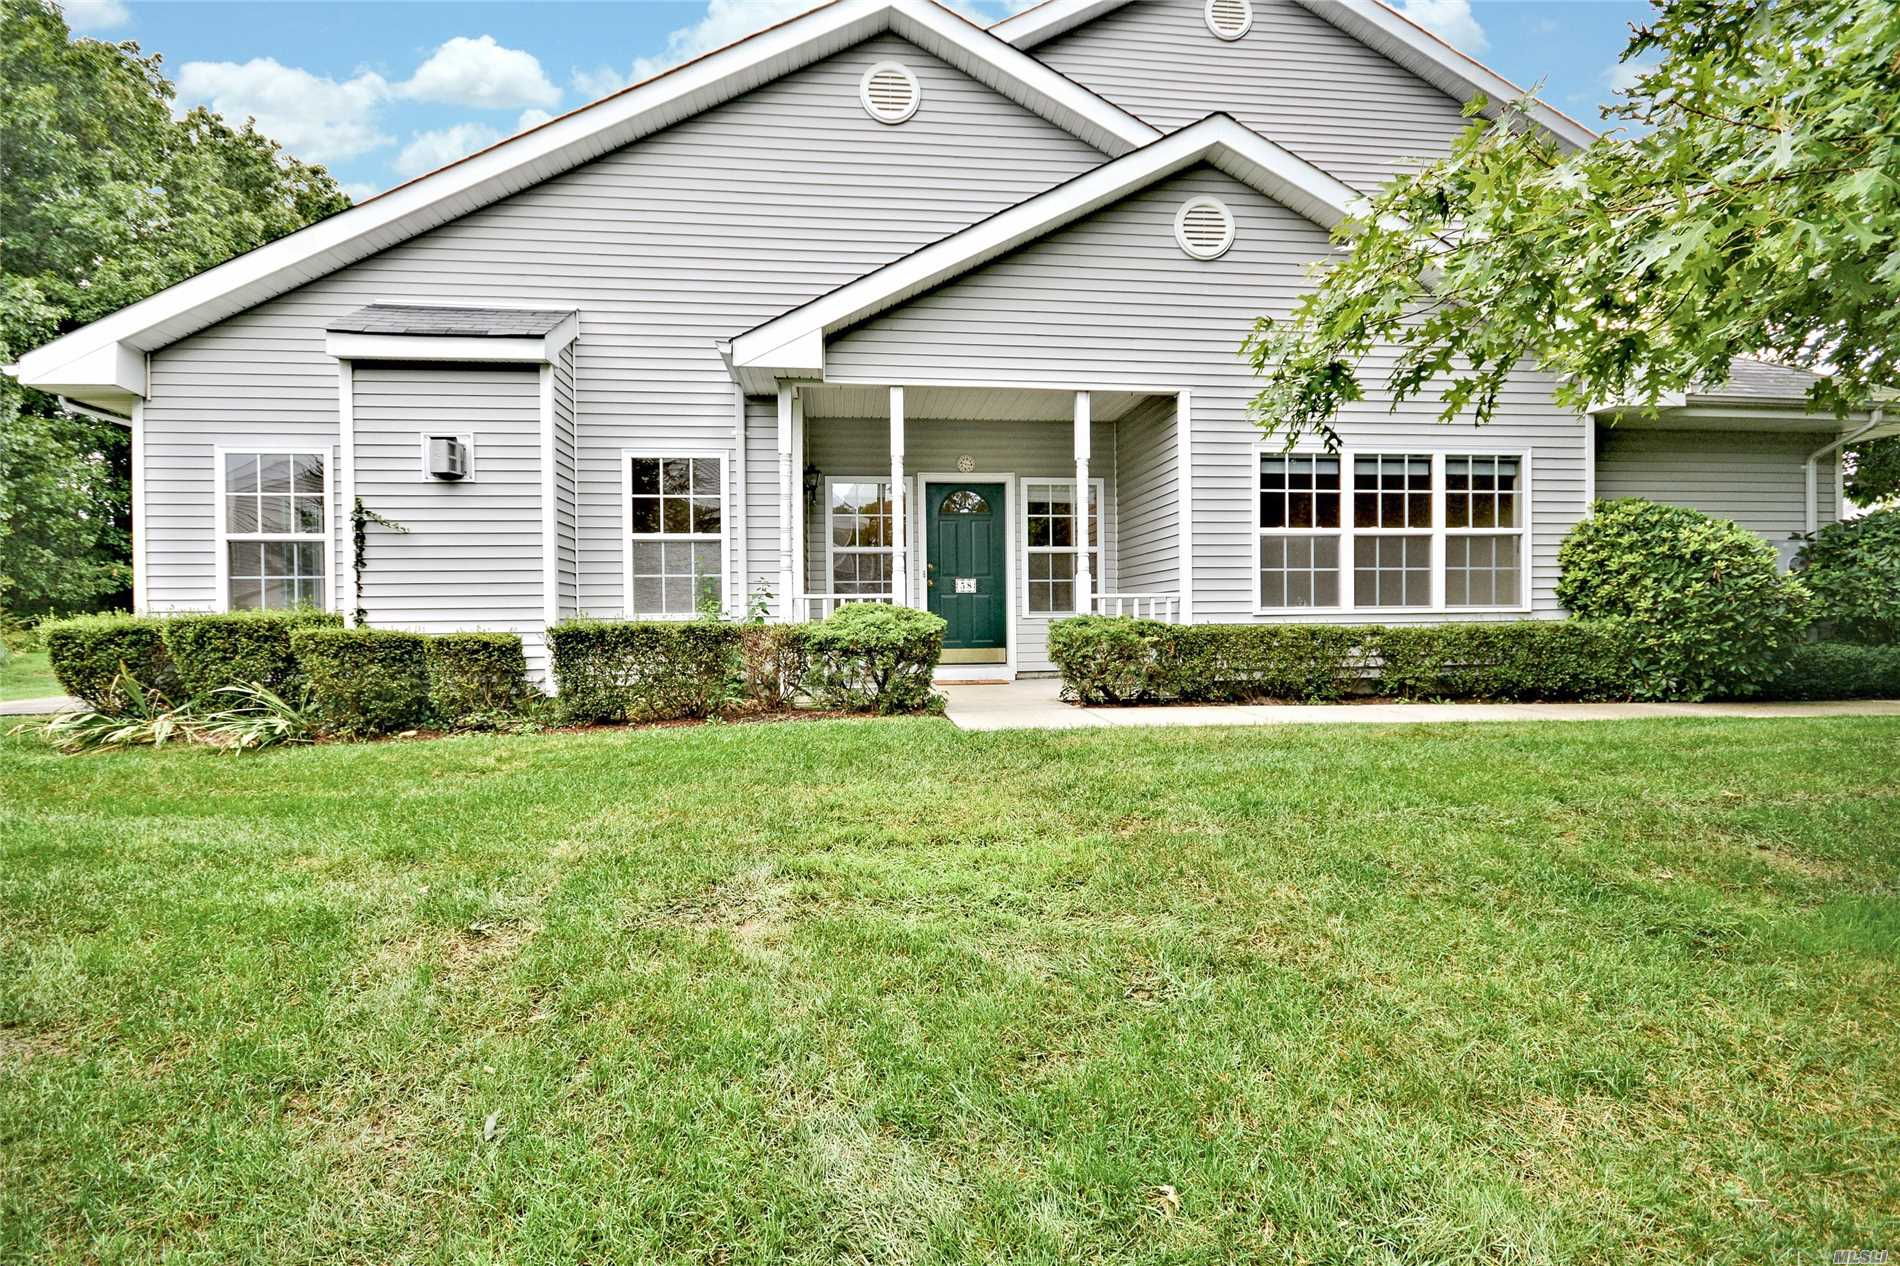 Property for sale at 58 Willow Wood Dr, East Setauket,  NY 11733